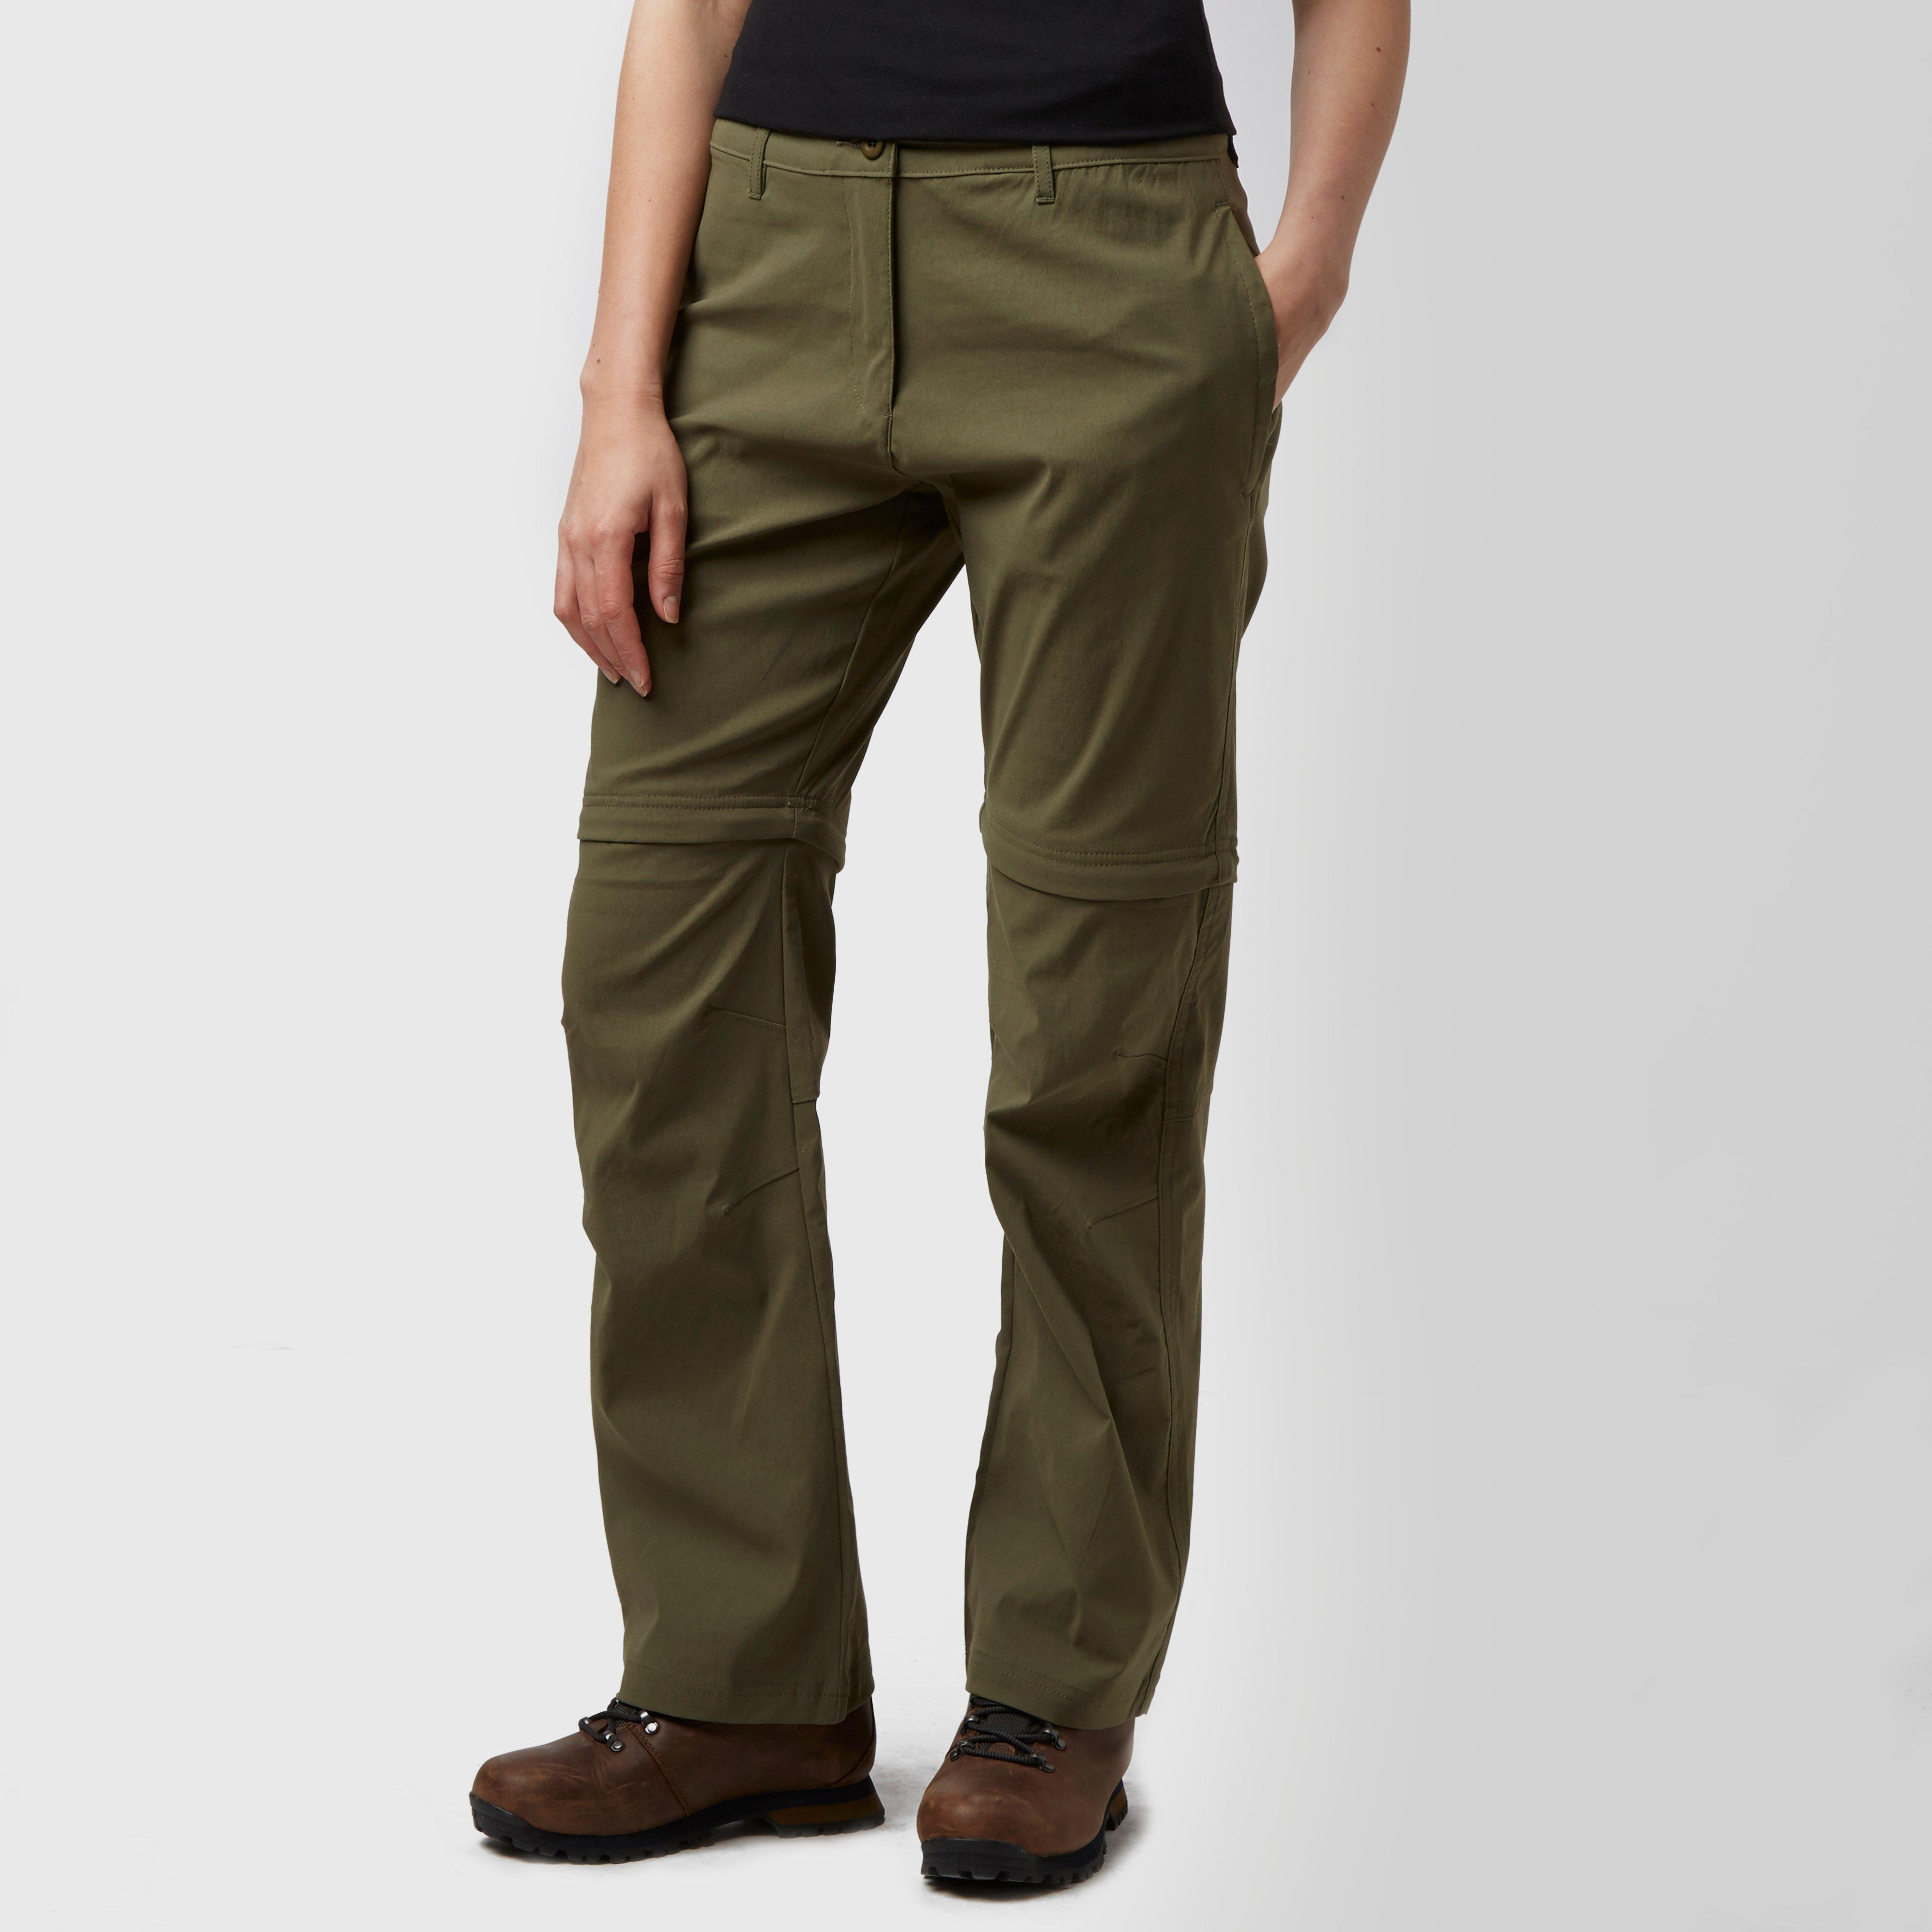 Peter Storm Womens Stretch Convertible Zip Off Trousers Khaki